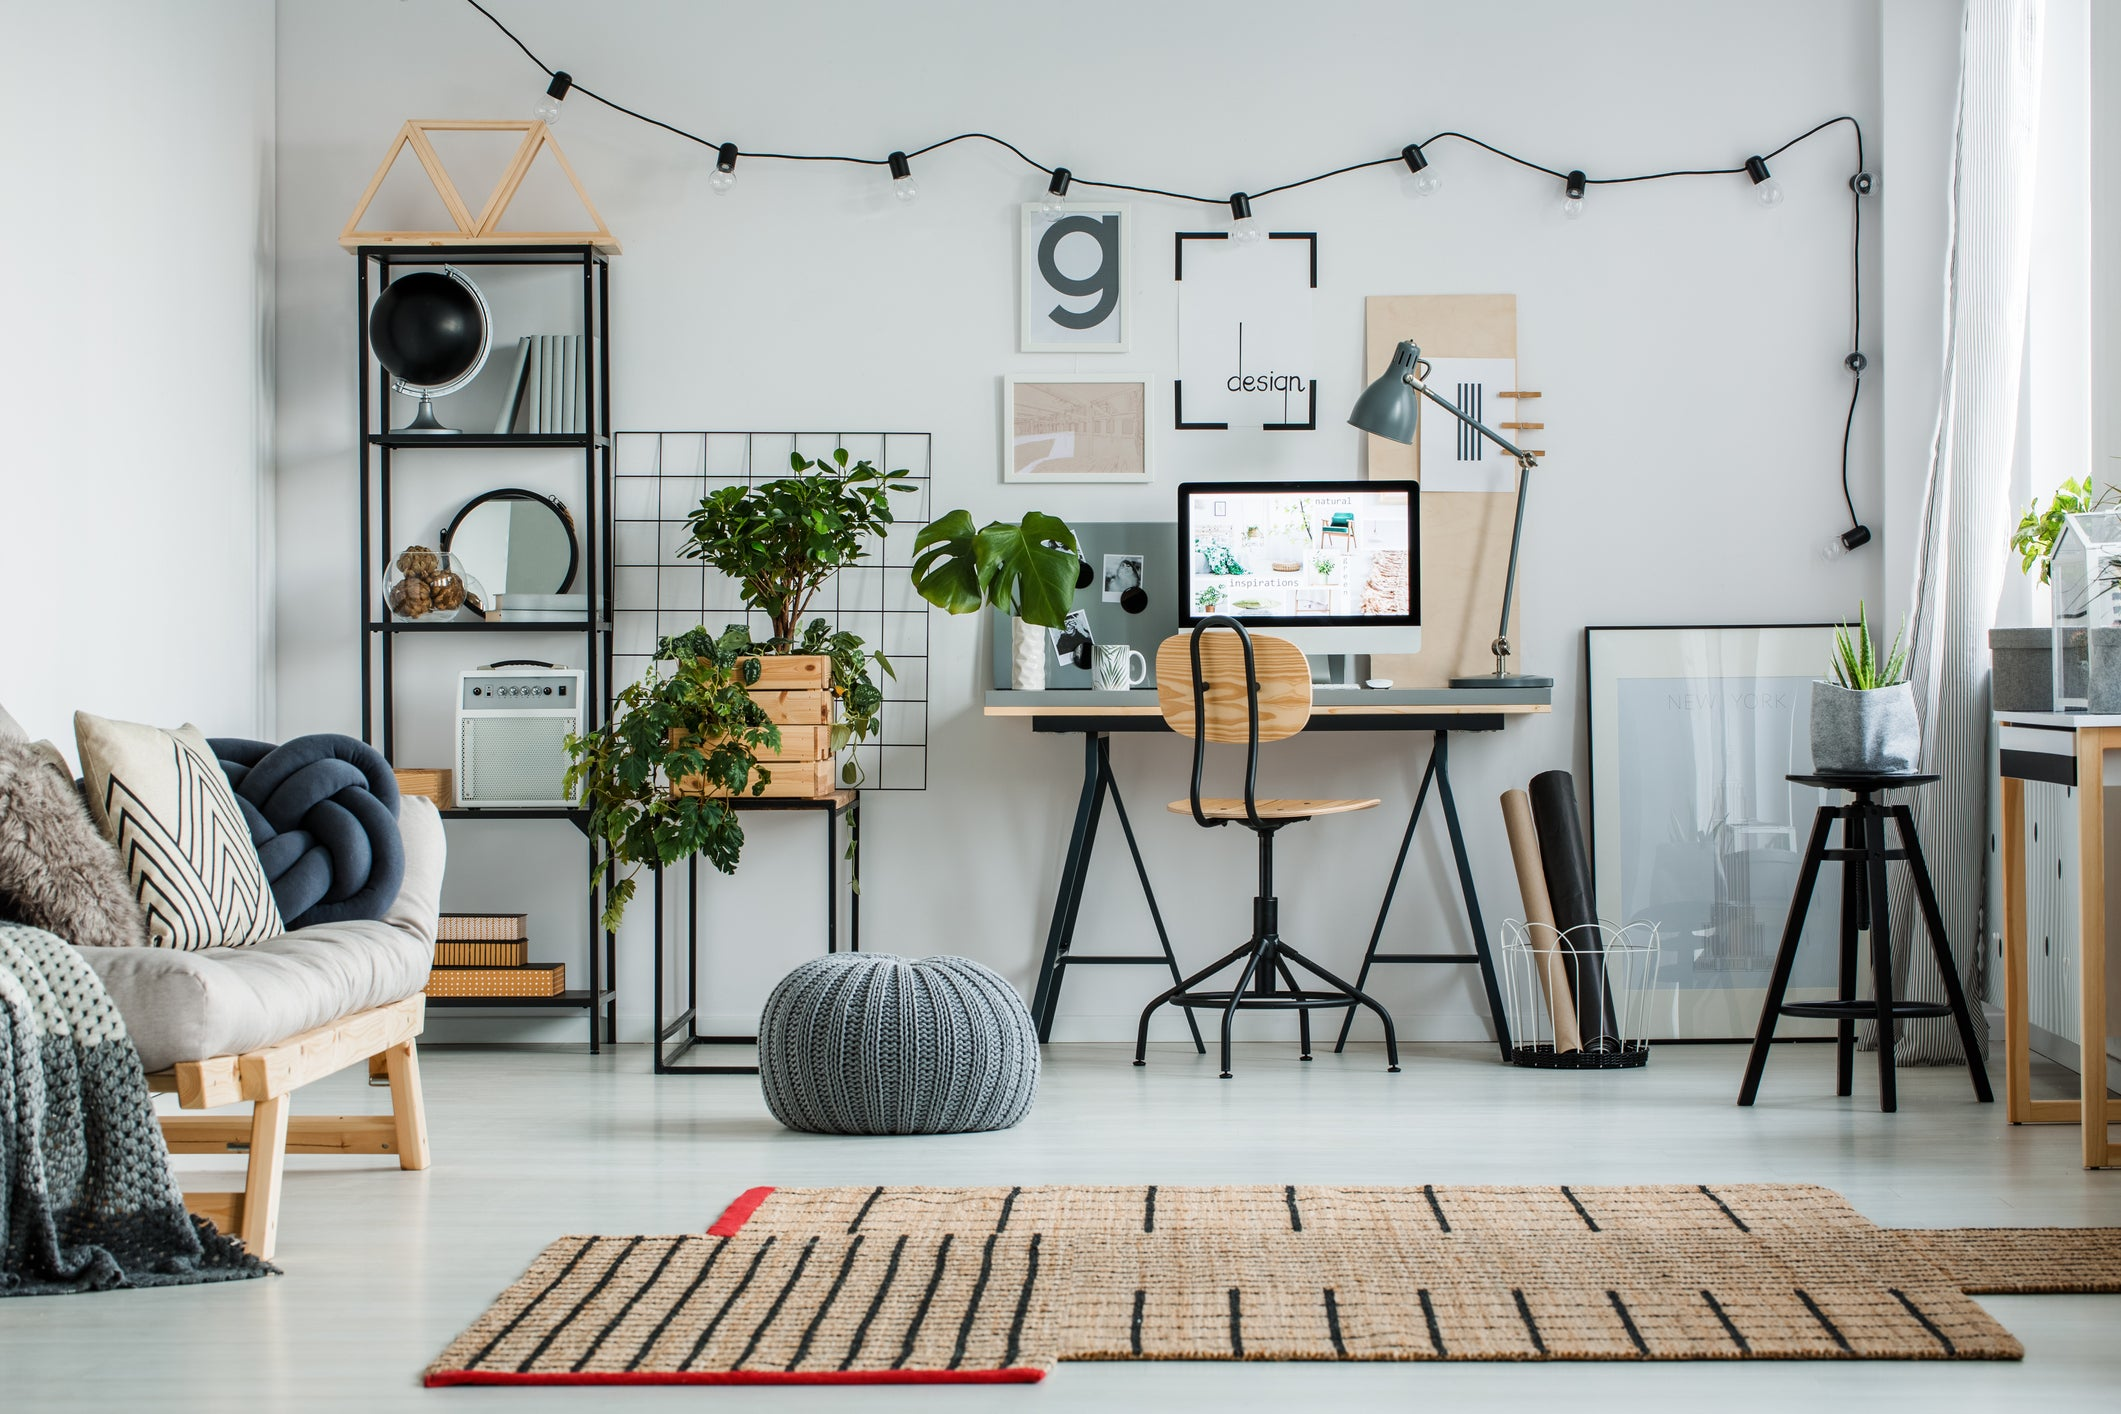 Hgtv While Modern Workplaces Are Often Little Functional In Design At Home Youre Free To Put Your Own Stamp On Things Set Up Workstation Wooden Desk Terrys Fabrics Home Office Ideas Design Decor Guide